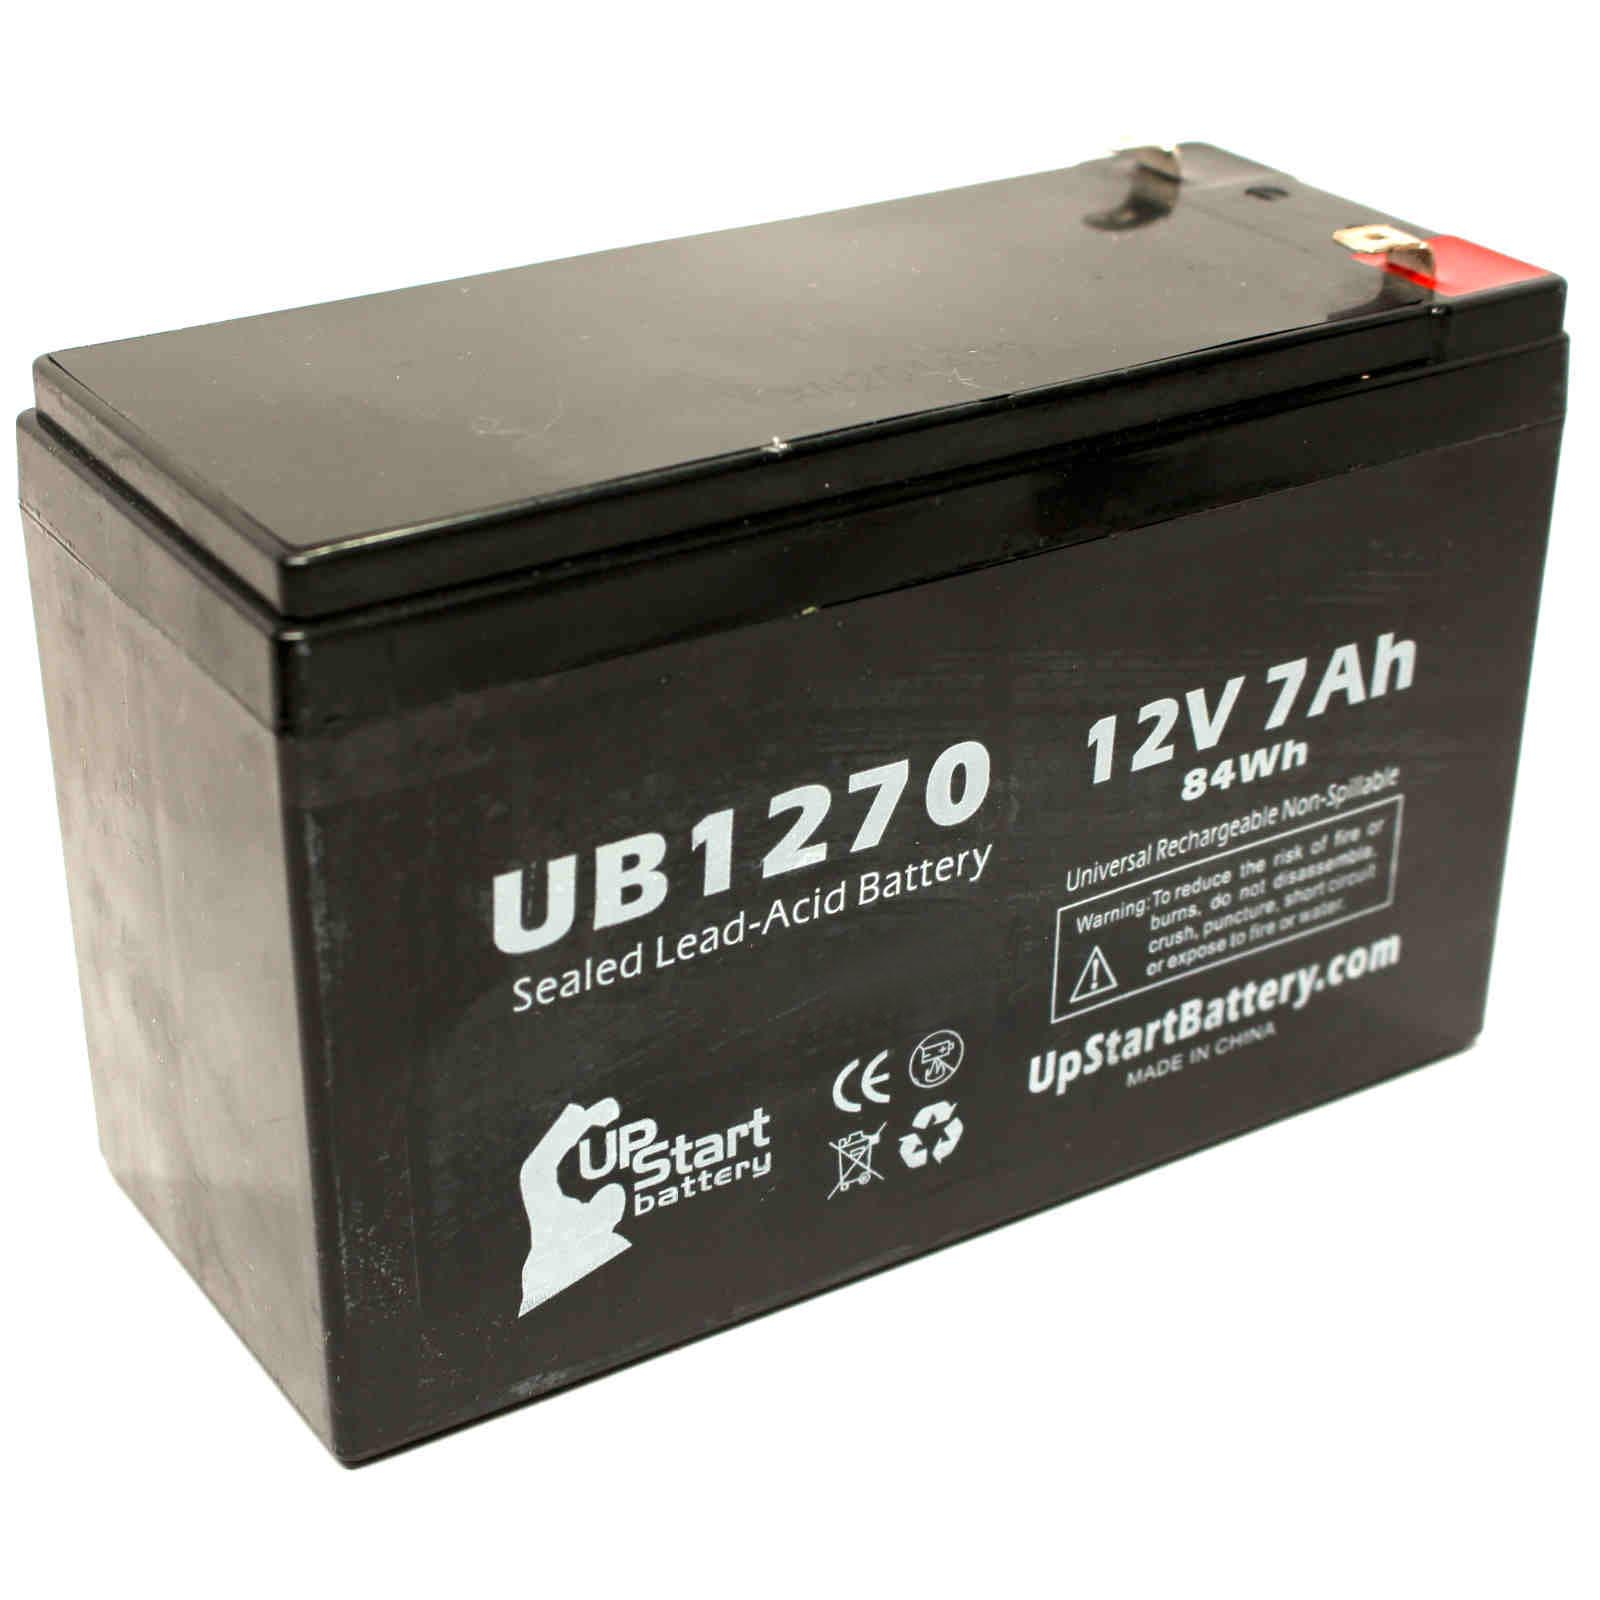 UB1270 cyberpower cp1500avrlcd battery ub1270 12v 7ah sealed lead acid  at soozxer.org